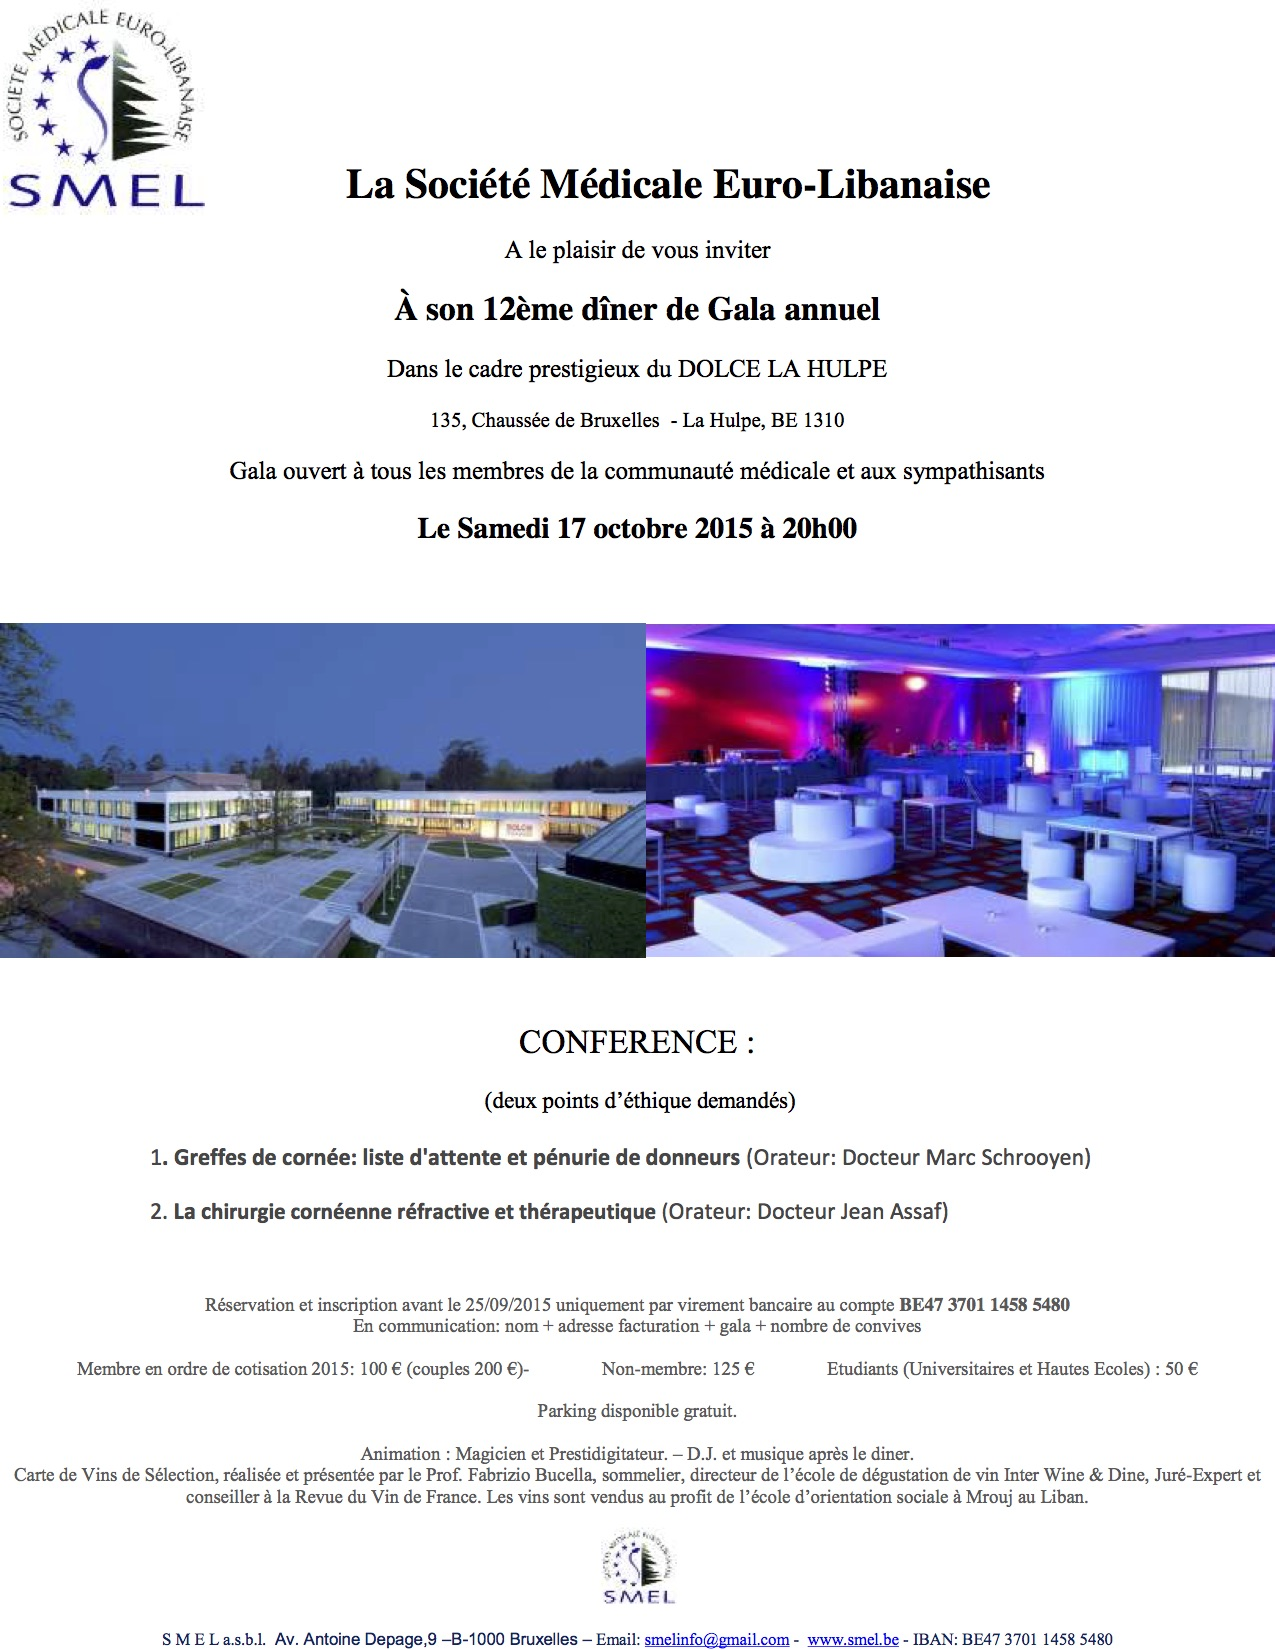 Invitation GALA SMEL 2015